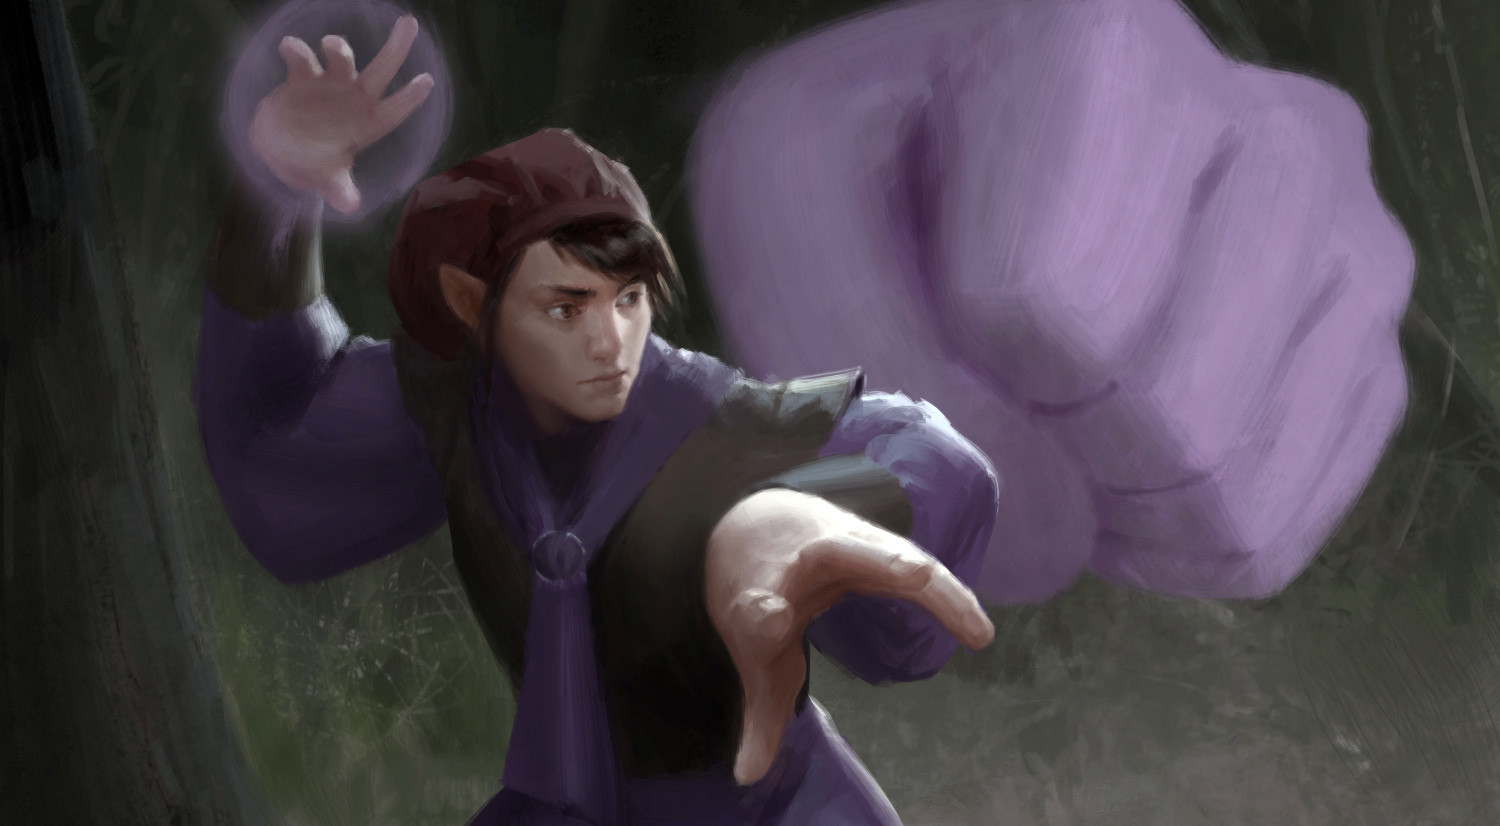 Scanlan Shorthalt